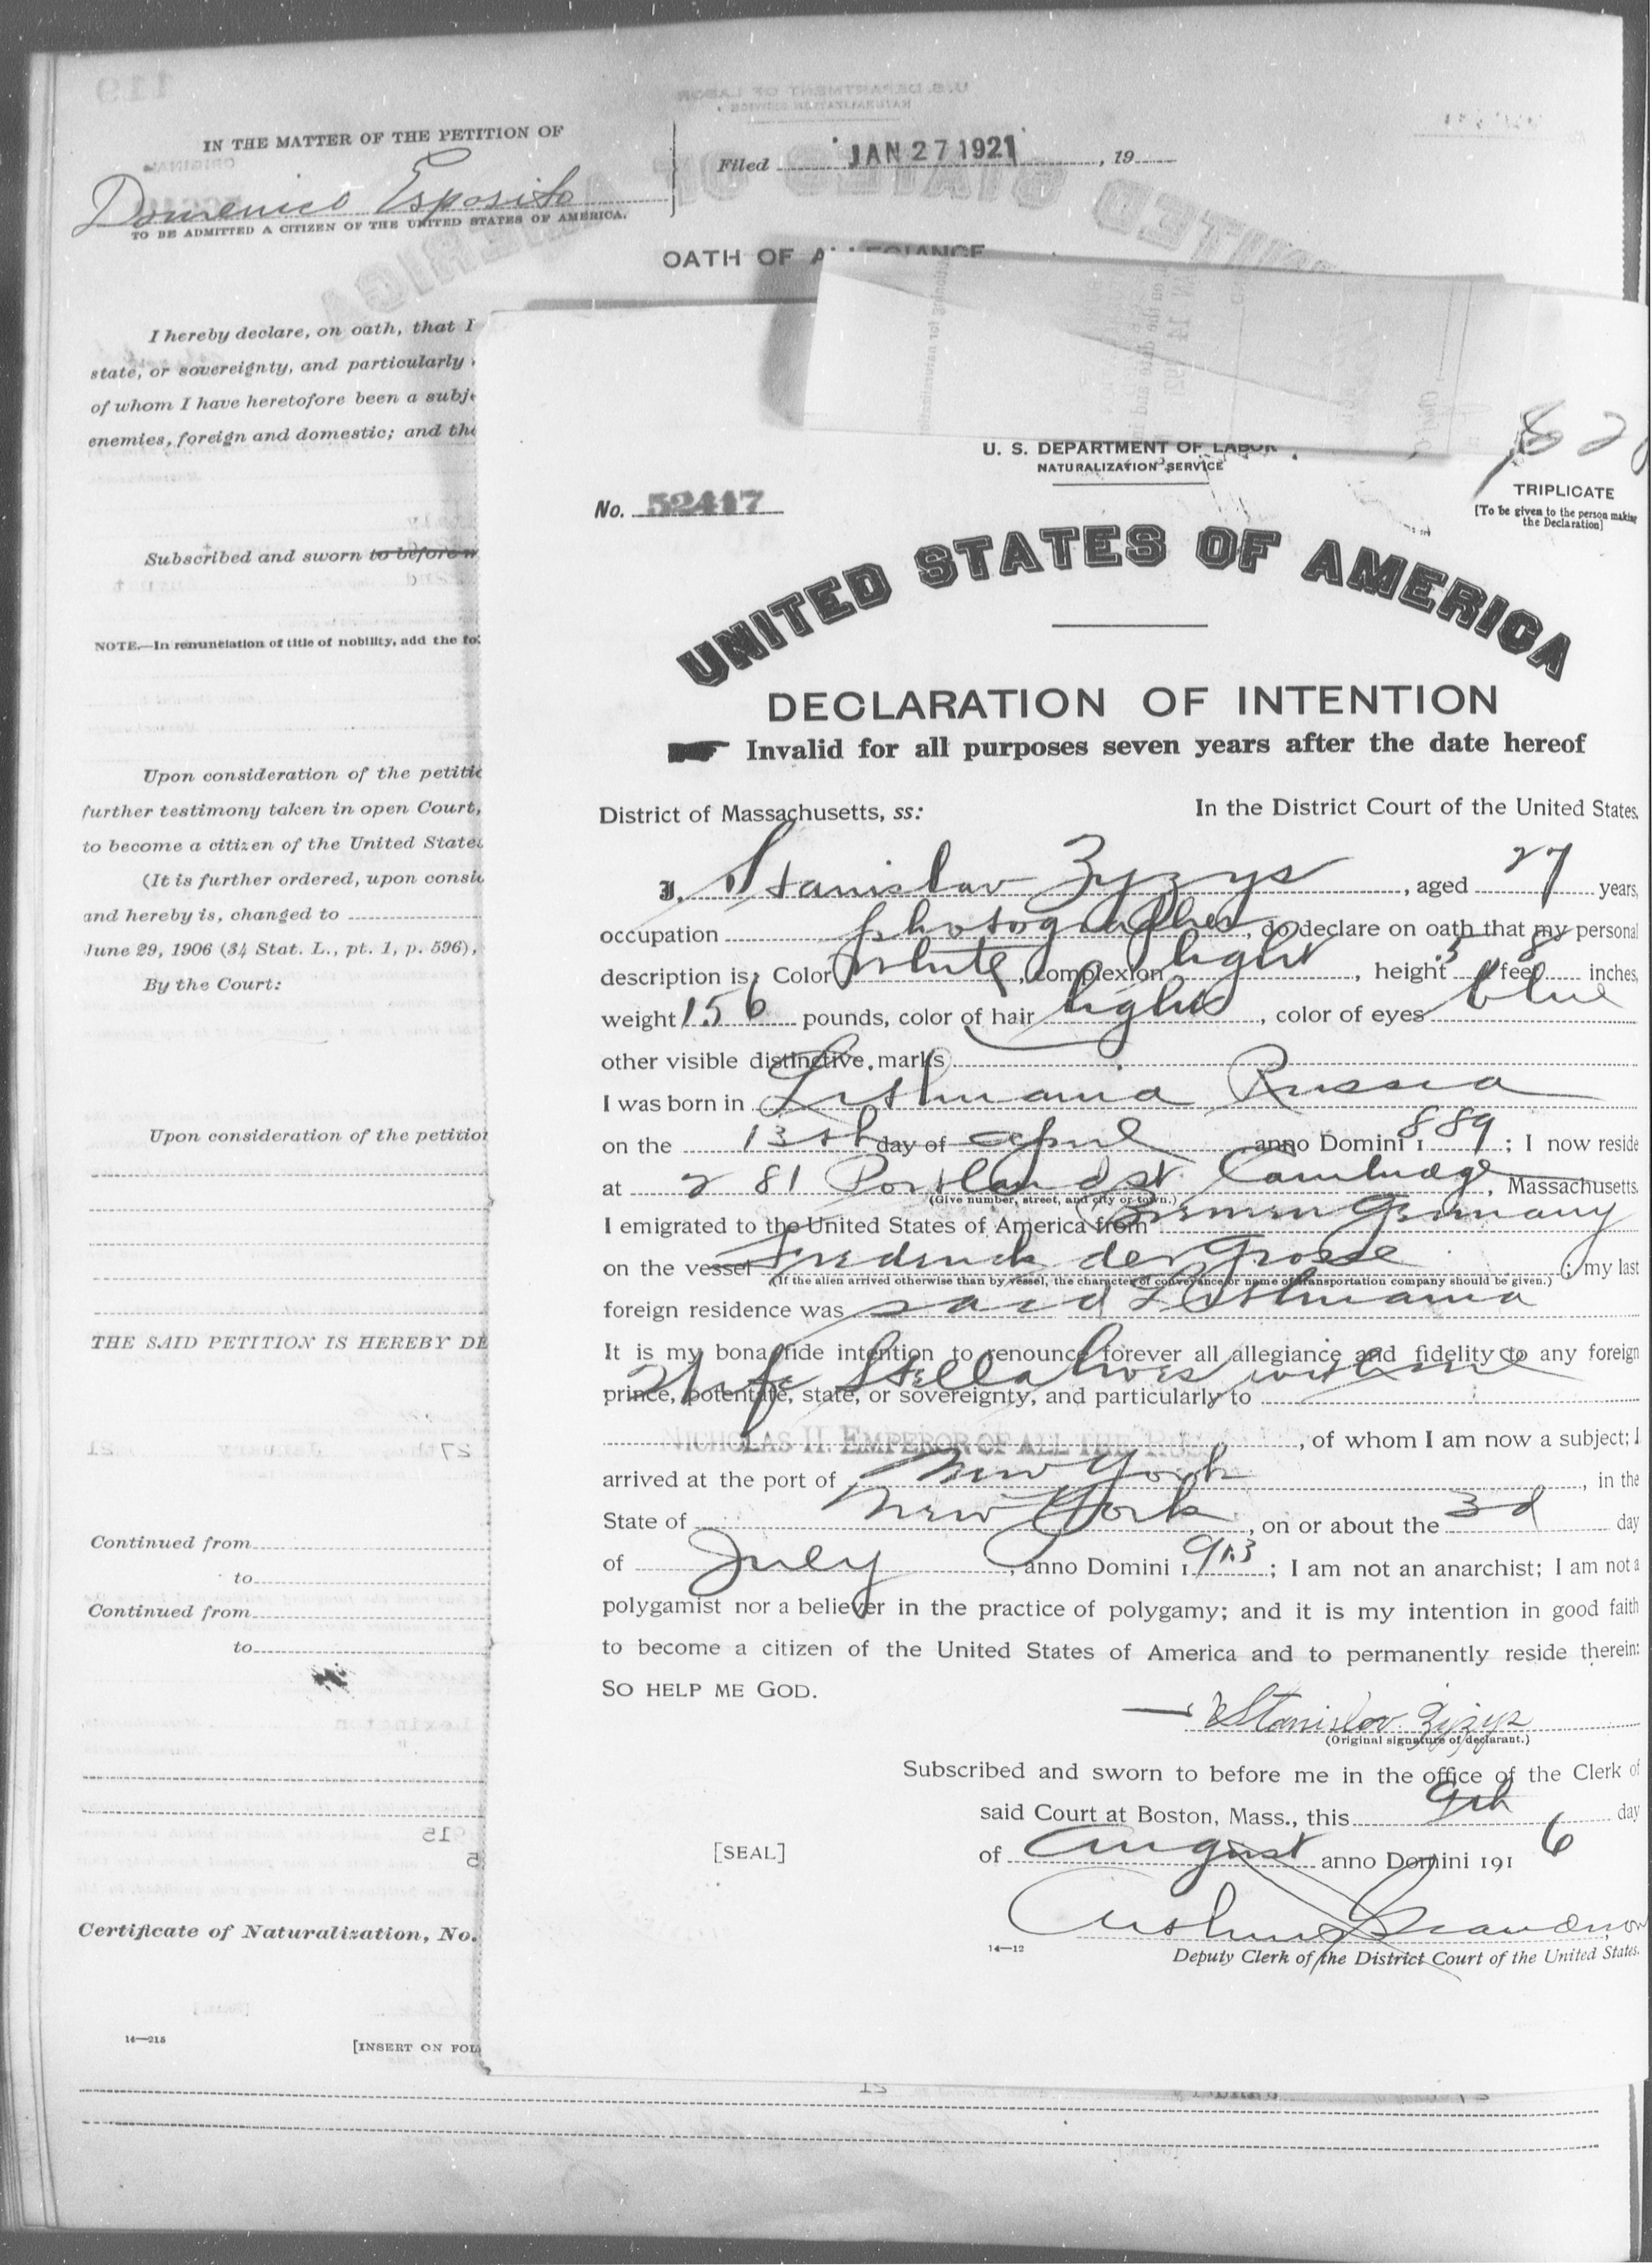 Petition for Naturalization of Stanislav Zyzys